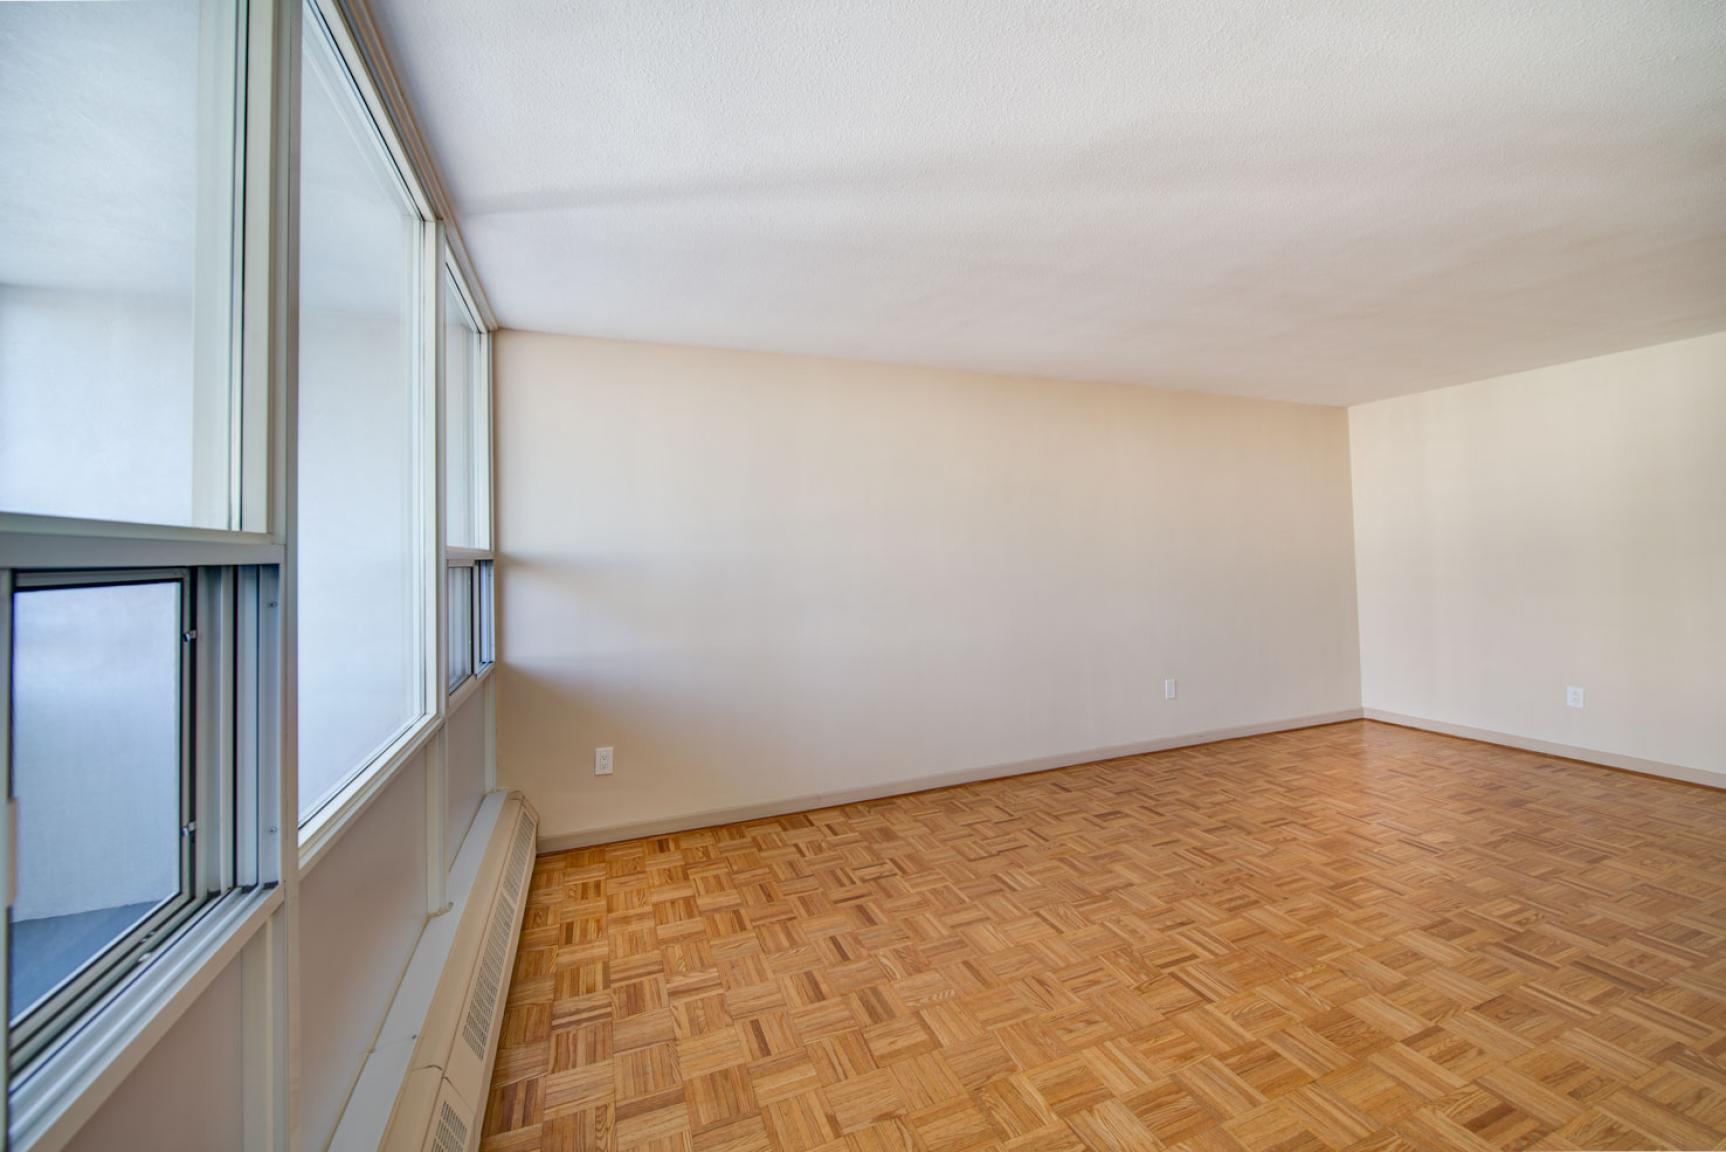 1 bedroom Apartments for rent in Toronto at Dunfield Tower - Photo 10 - RentersPages – L138879